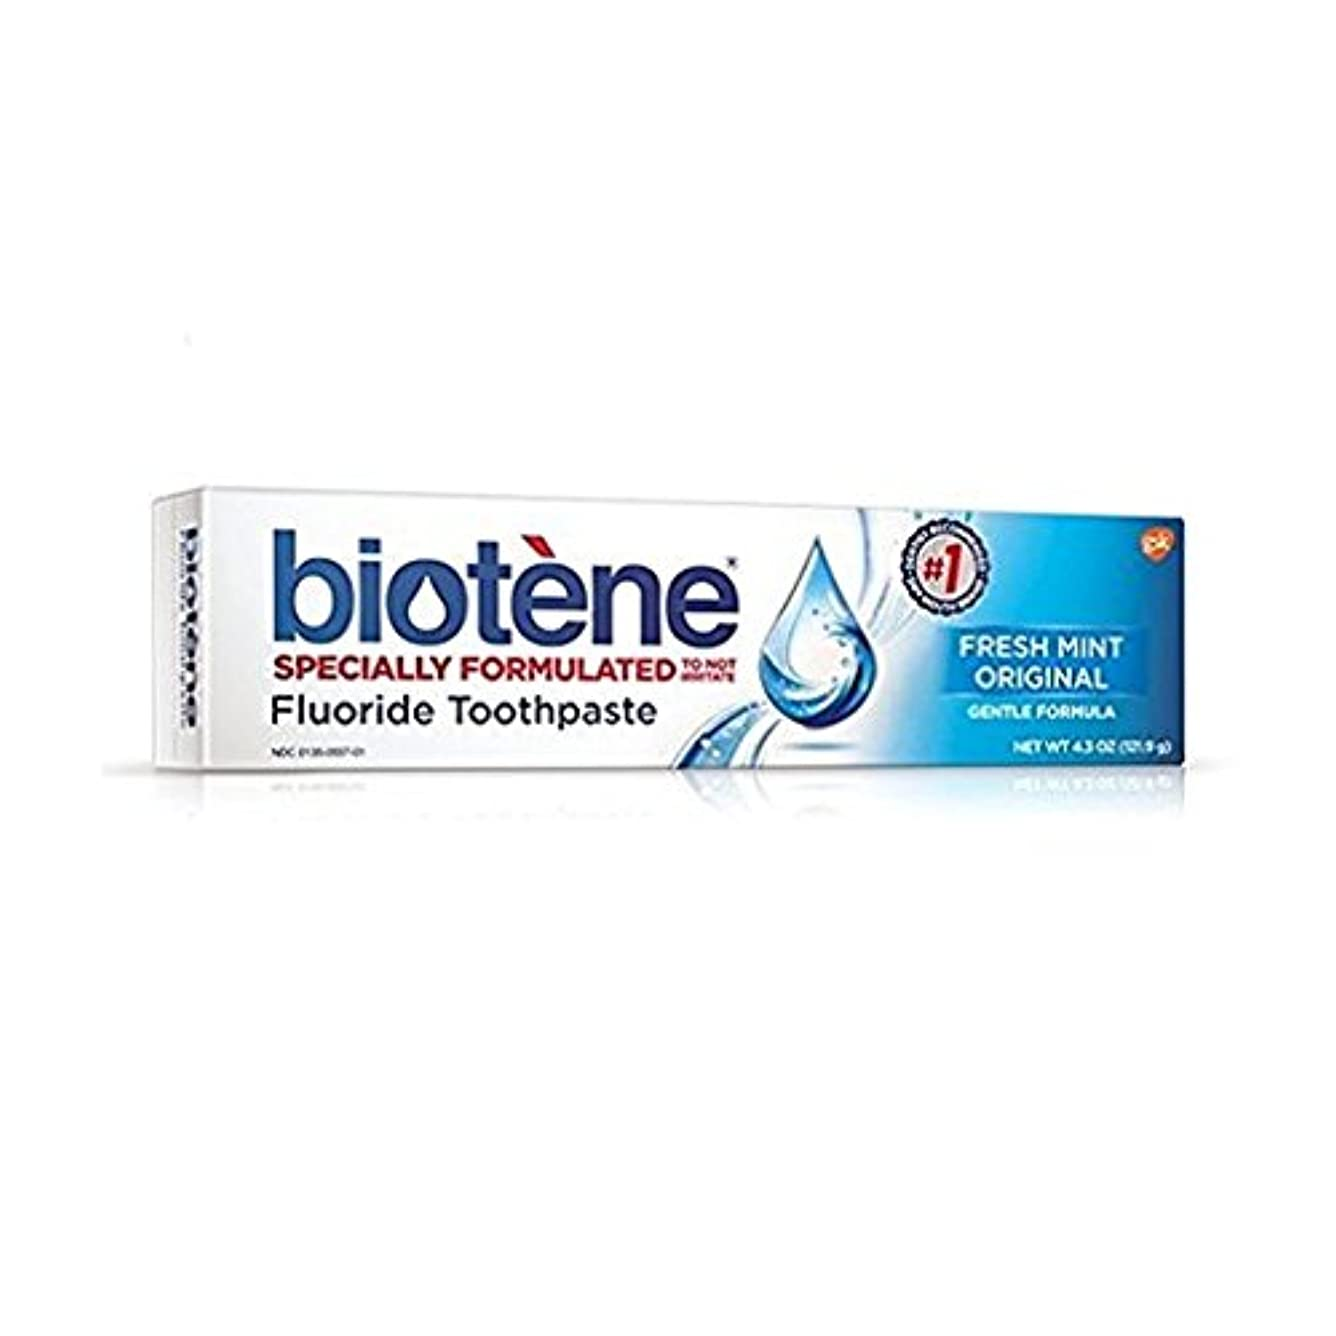 丘コンパクト宅配便Biotene Dry Mouth Fluoride Toothpaste Fresh Mint Original 4.3 Oz. (2 Pack) by Biotene